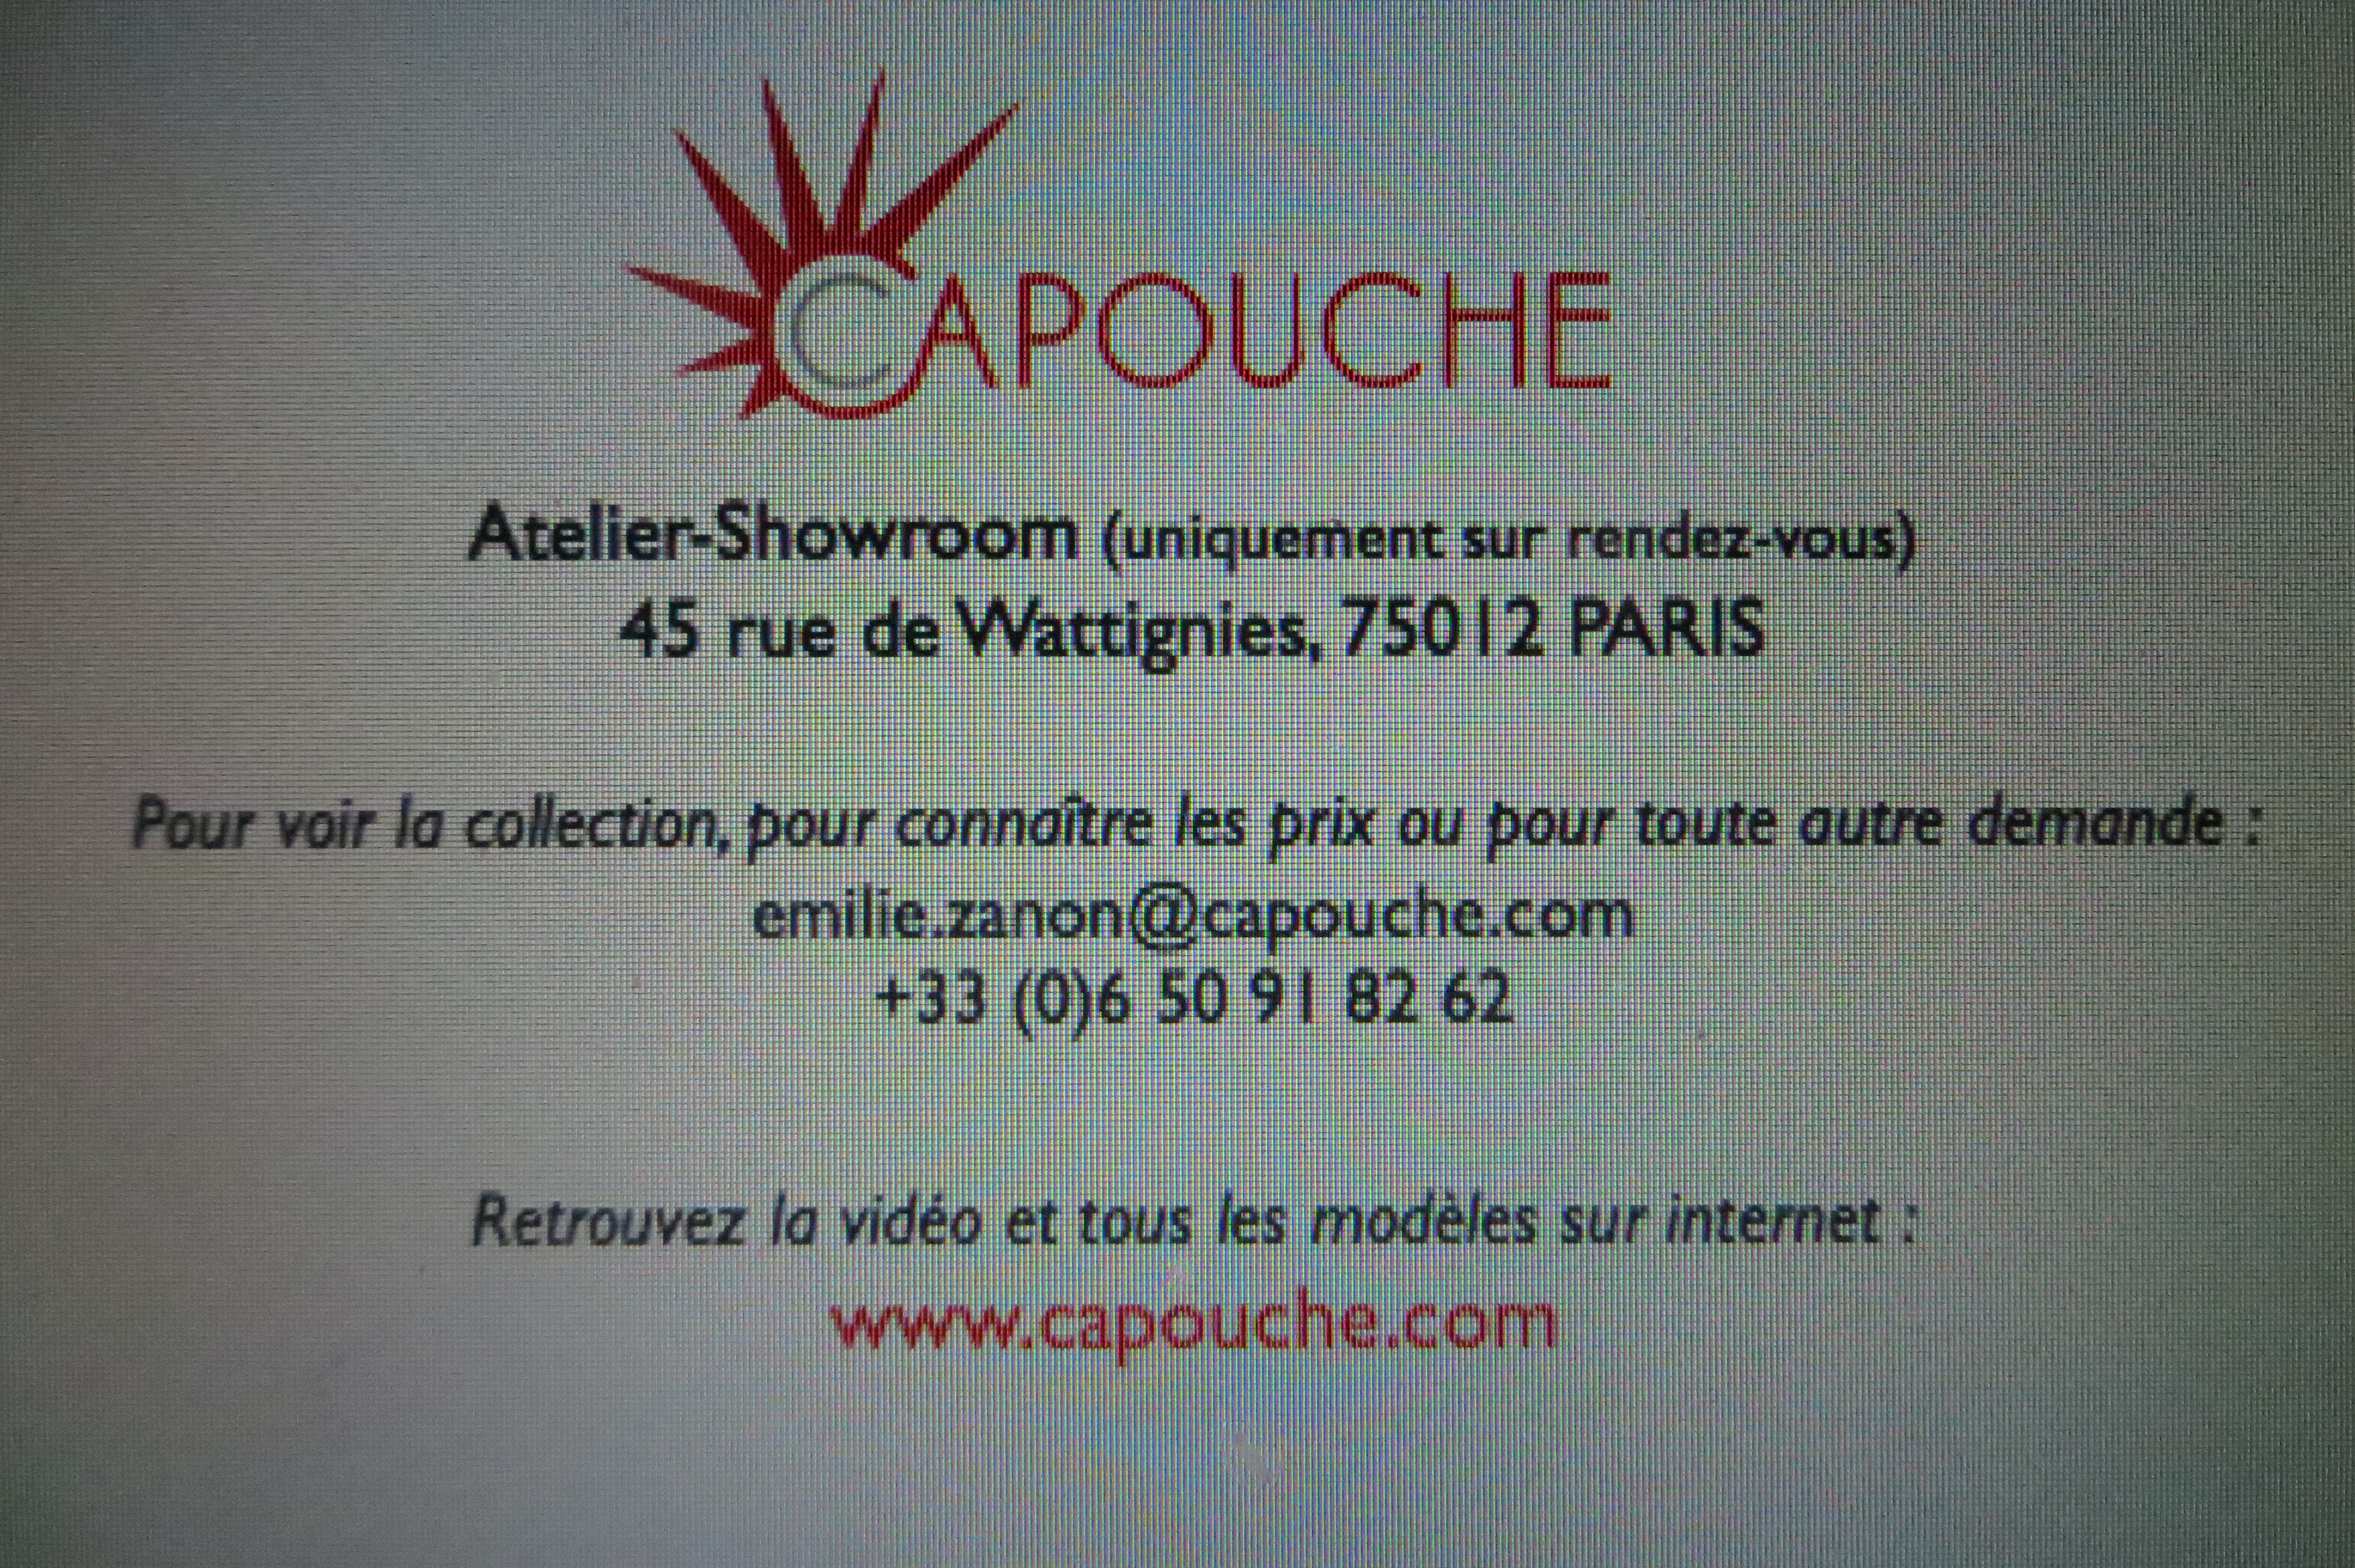 Capouche, luxury street wear